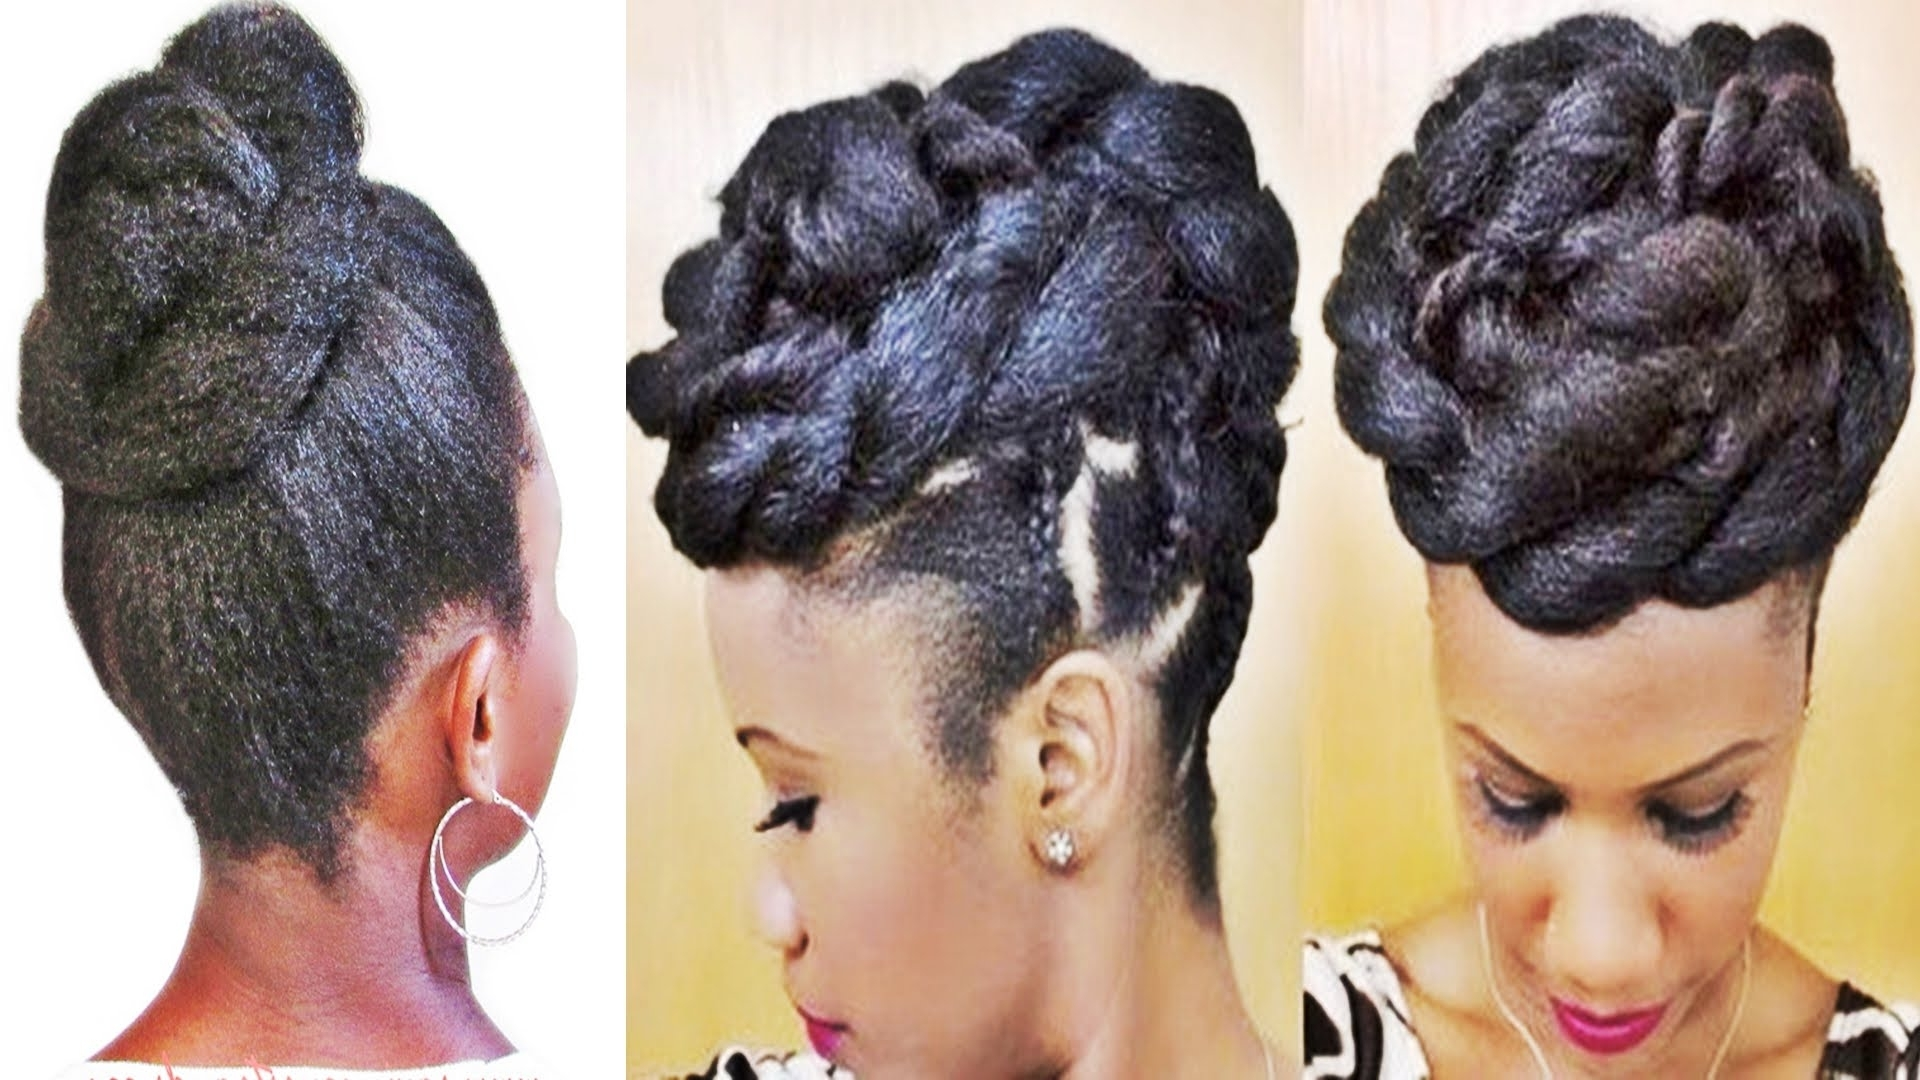 Braids And Twists Updo Hairstyle For Black Women – Youtube Pertaining To Elegant Cornrow Updo Hairstyles (View 6 of 15)